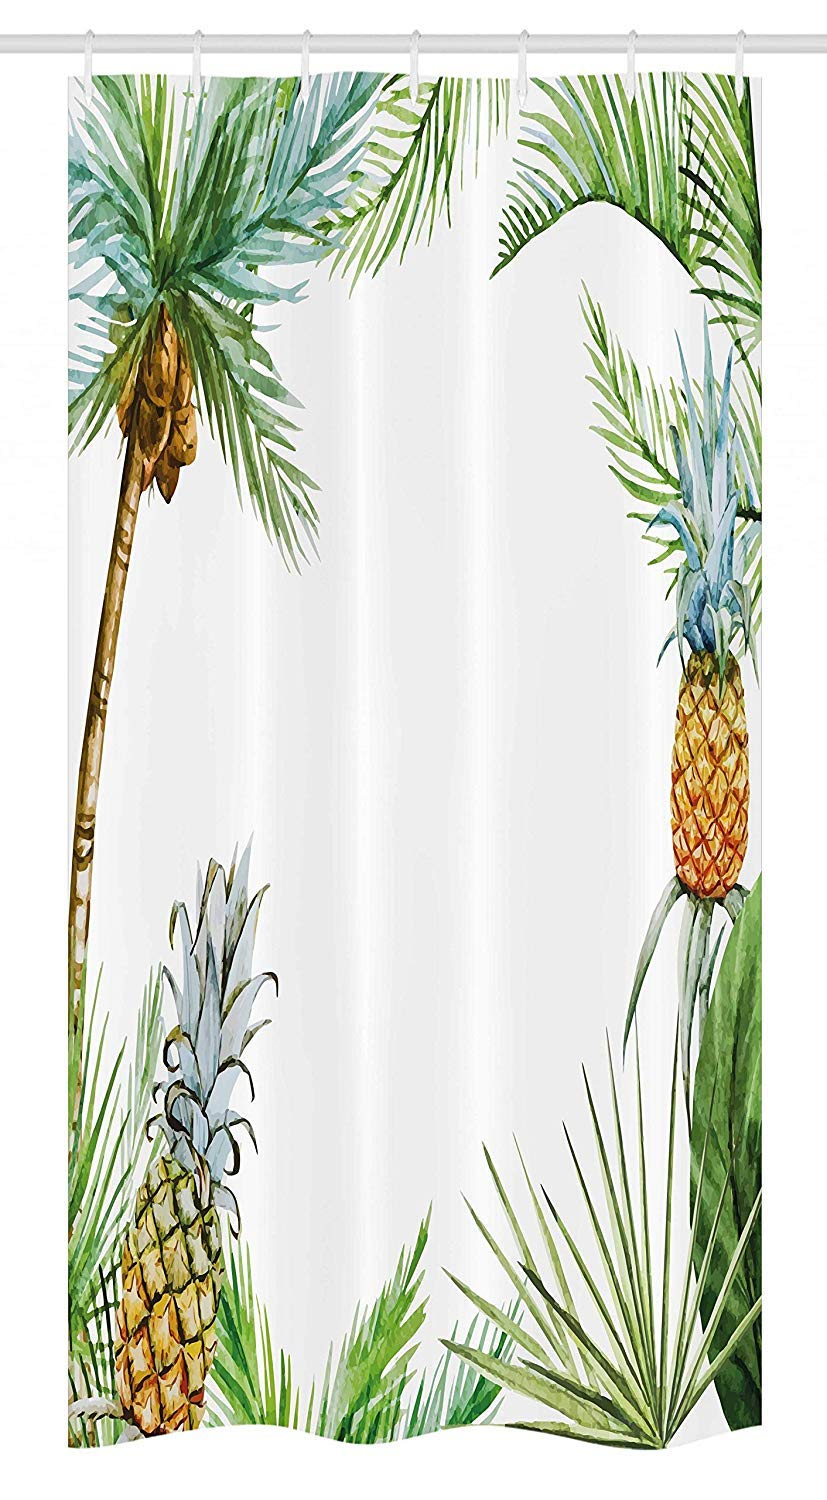 Printing Pineapple Stall Shower Curtain, Watercolor Tropical Island Style Border Print Exotic Fruit Palm Trees and Leaves, 72 x 84 Inches Multicolor